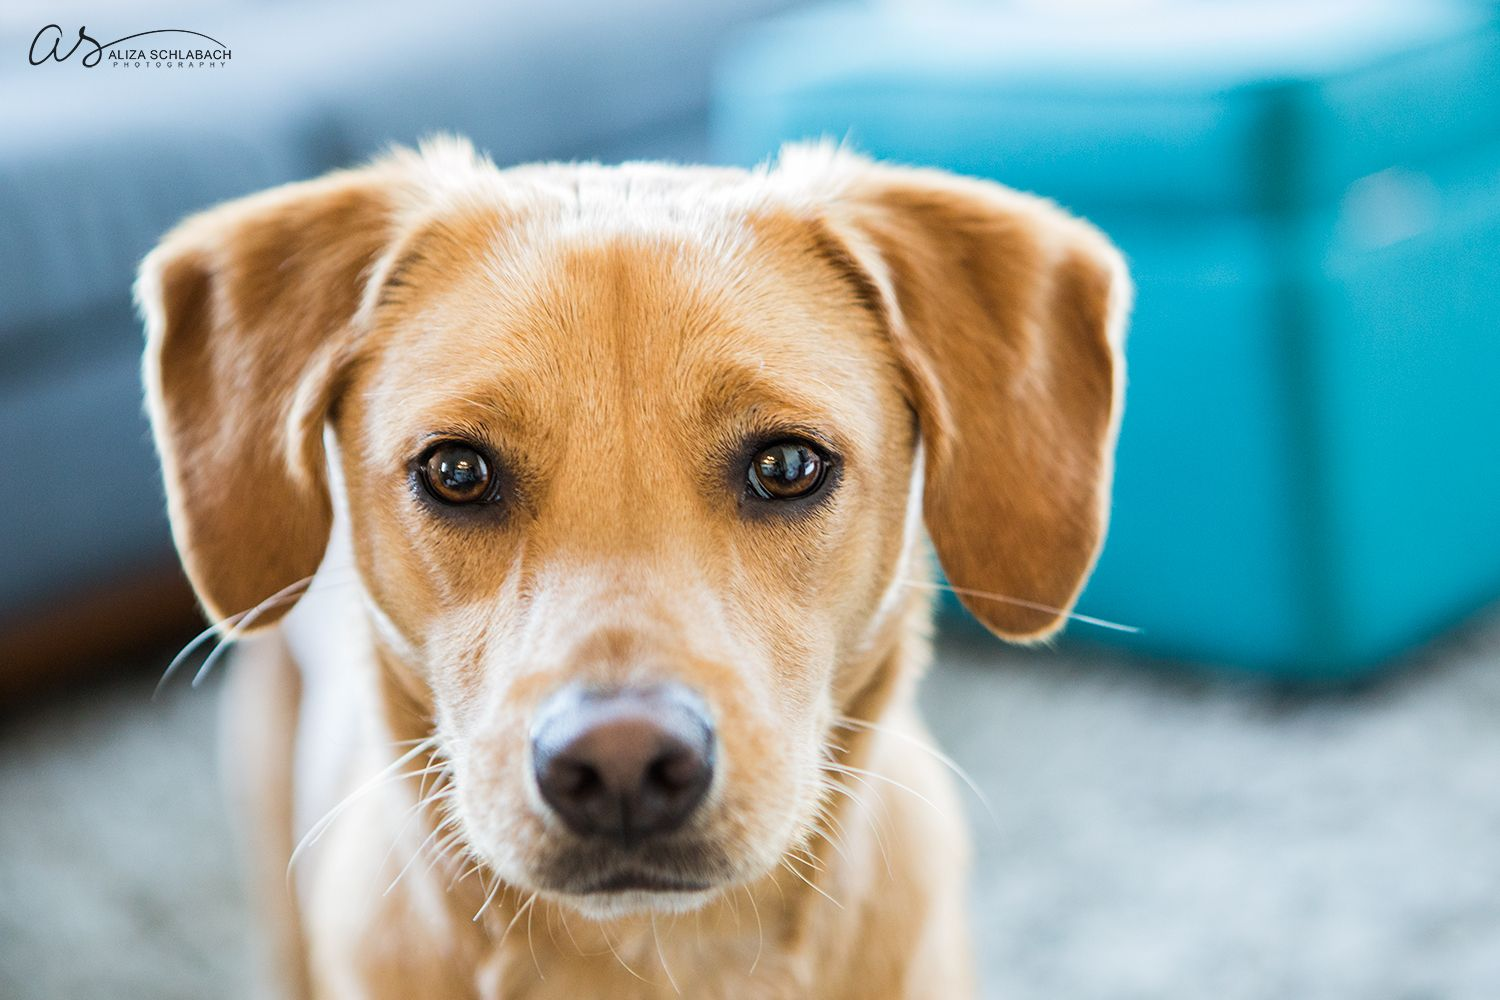 Golden dog looking into camera   Teal   Pet Photography   Copyright 2015 Aliza Schlabach Photography   ByAliza.com